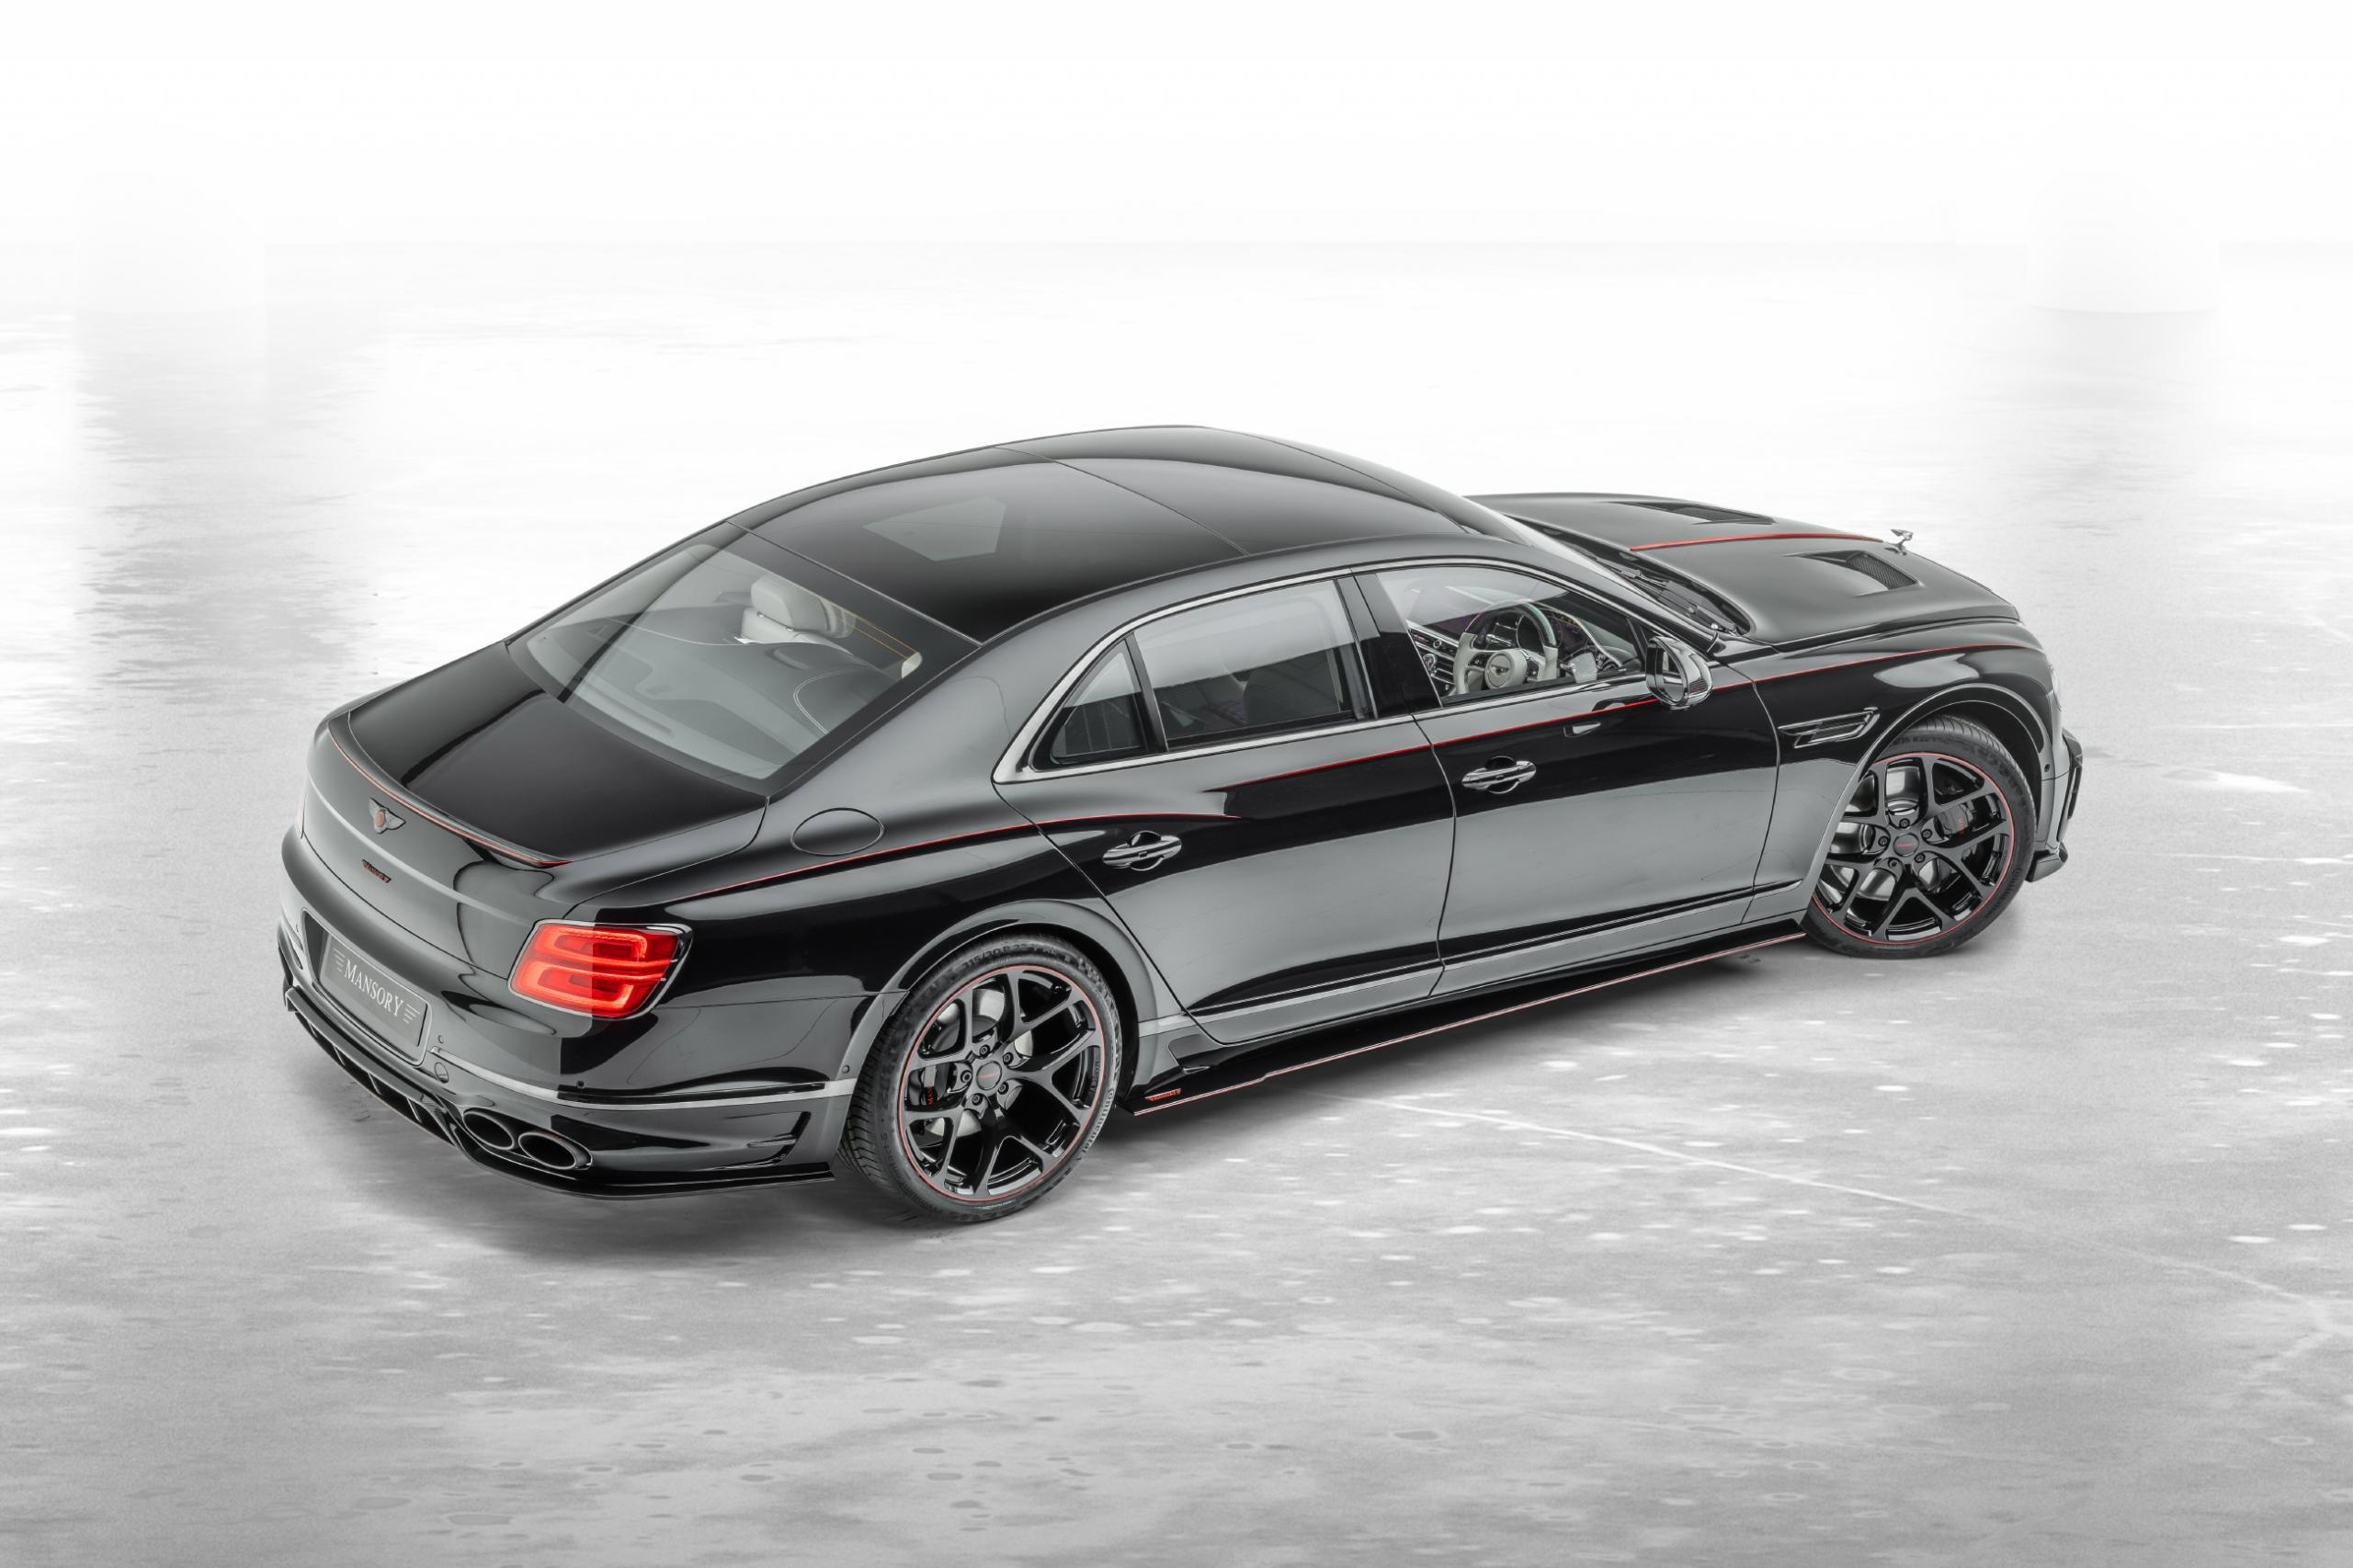 Bentley-Flying-Spur-by-Mansory-8